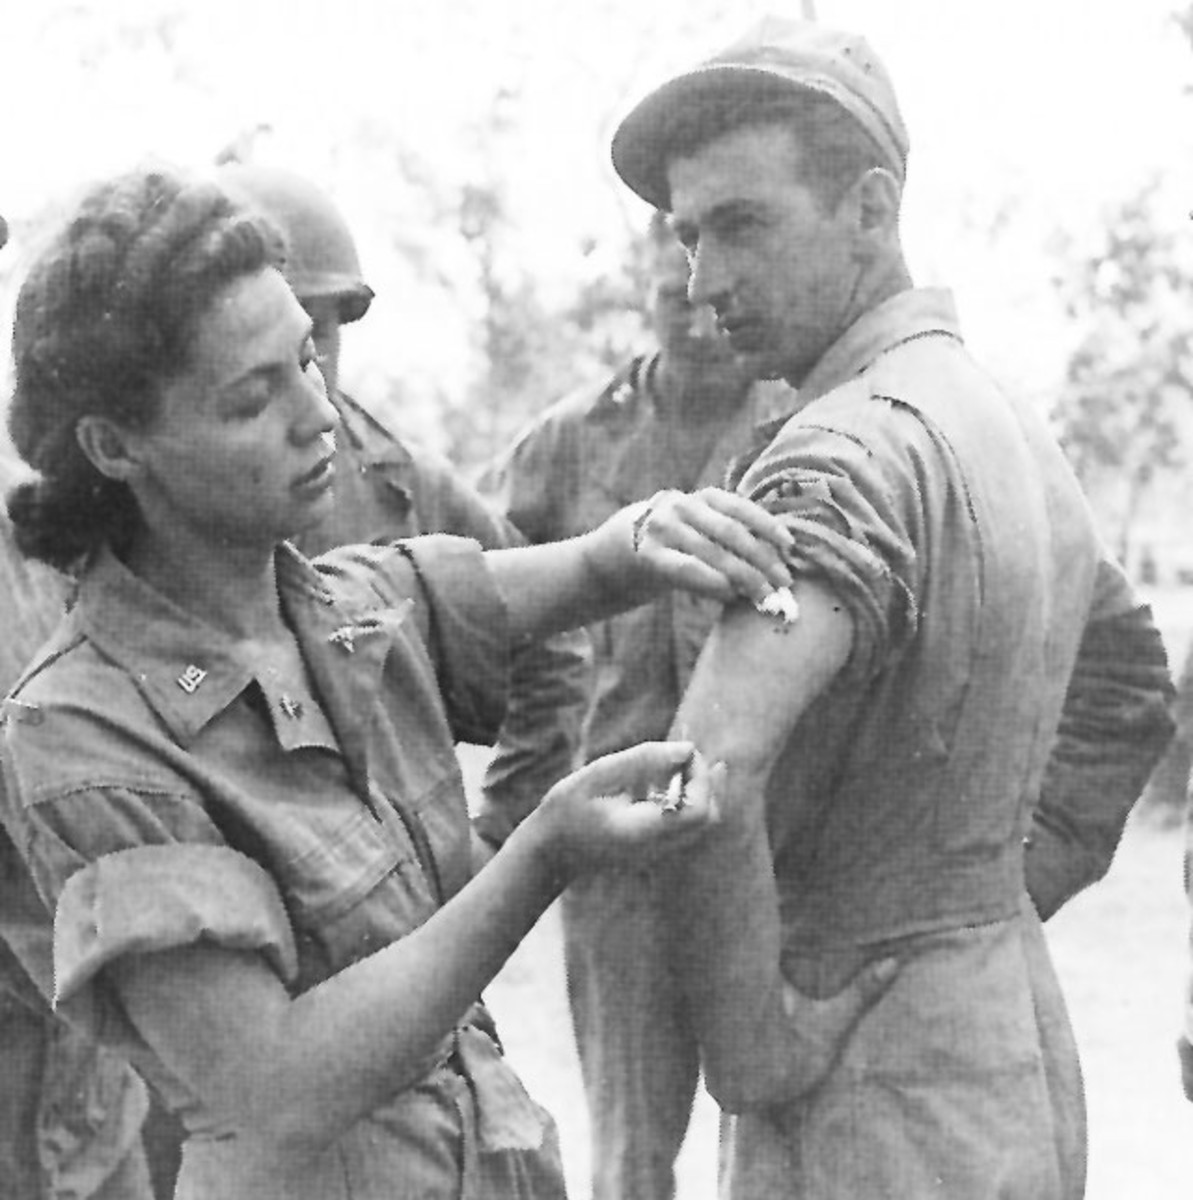 US Nursing Corps coming to the aid of an injured soldier